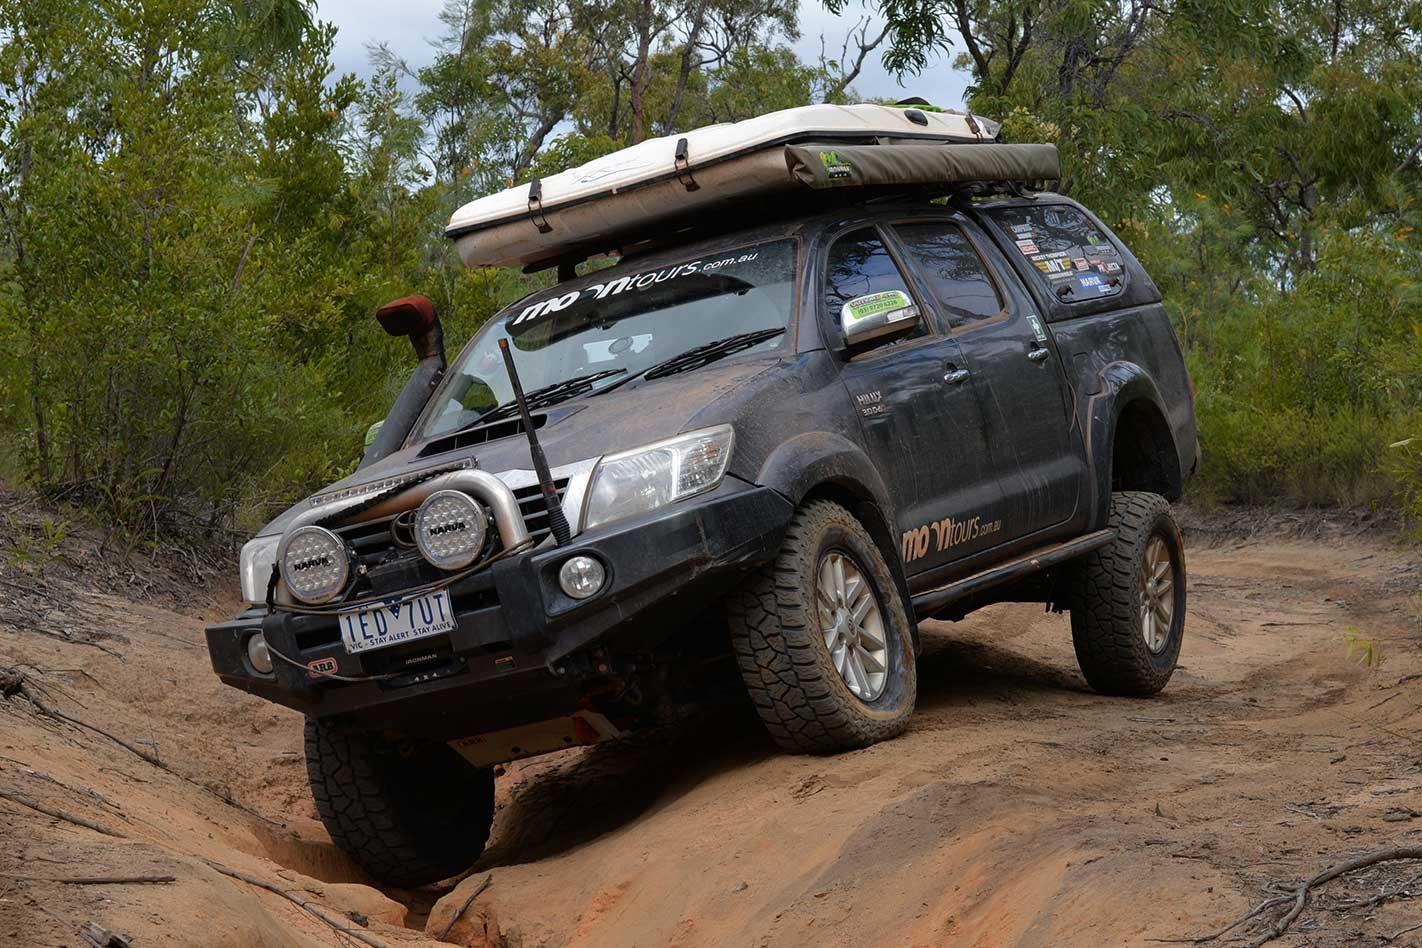 Toyota Hilux 3.0TD in the 4x4 shed